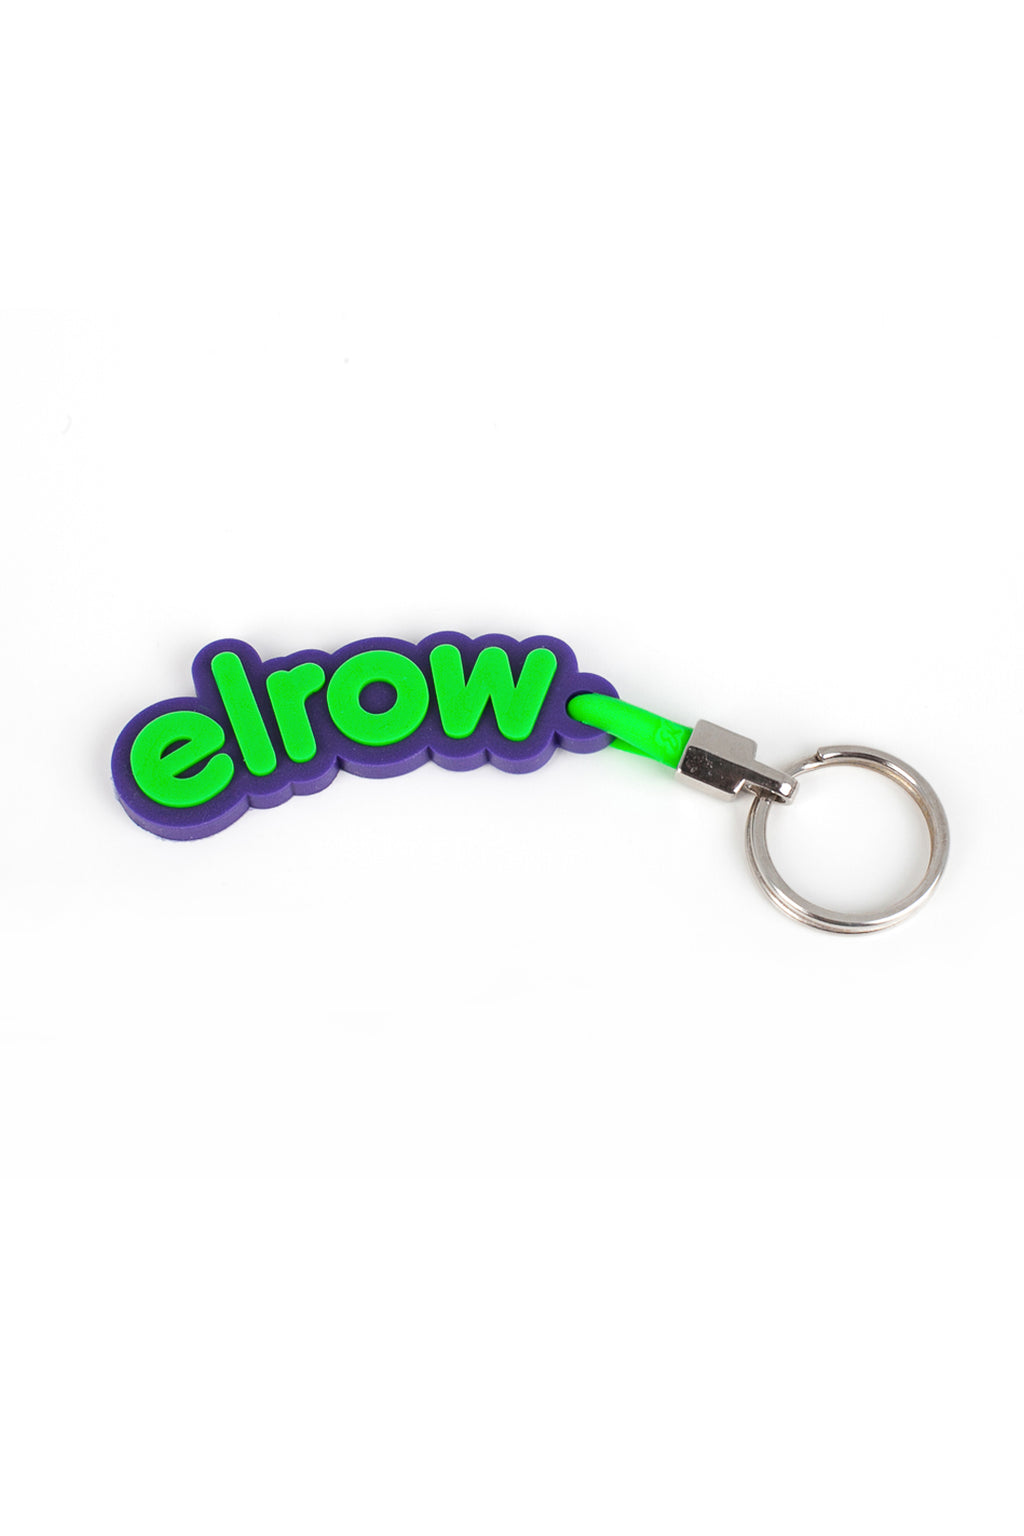 elrow purple and green keyring